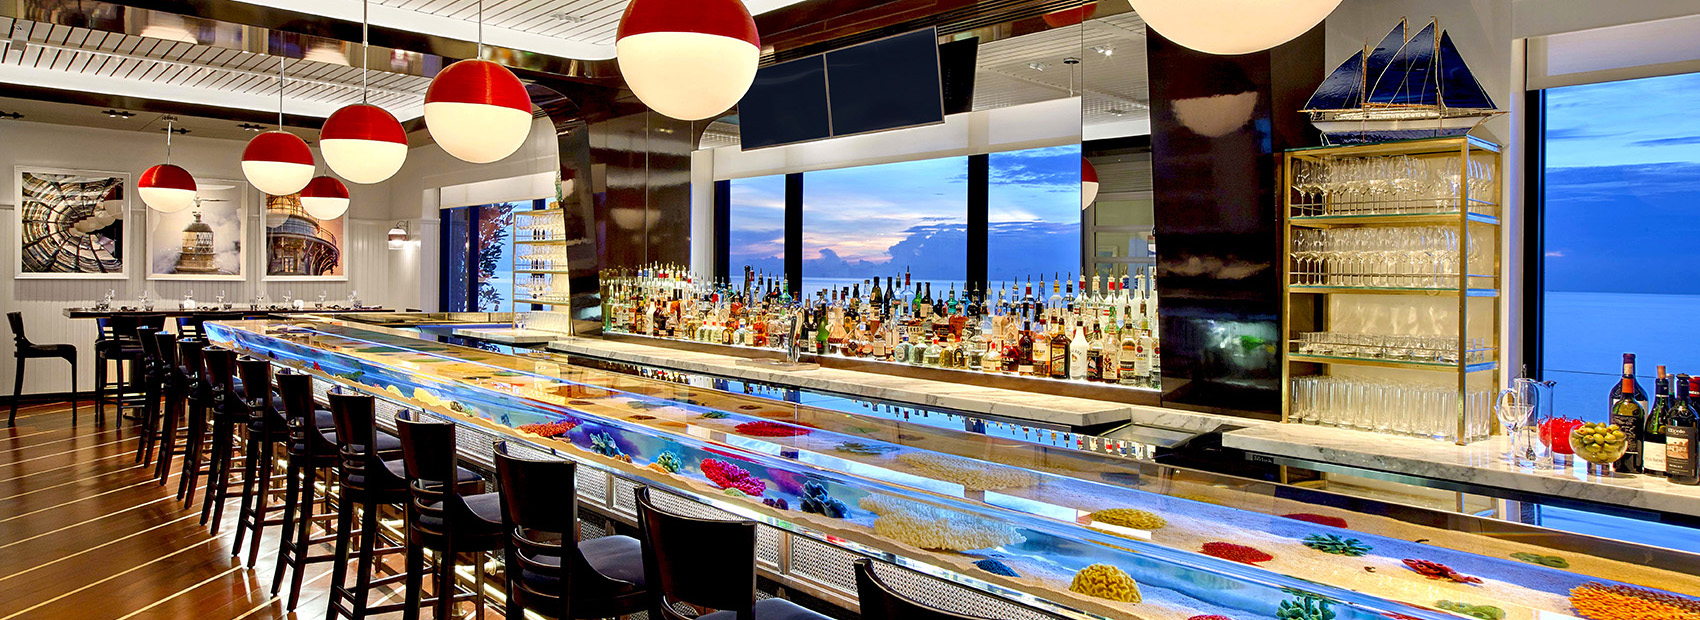 Aquarium bar at Seafood Bar at The Breakers